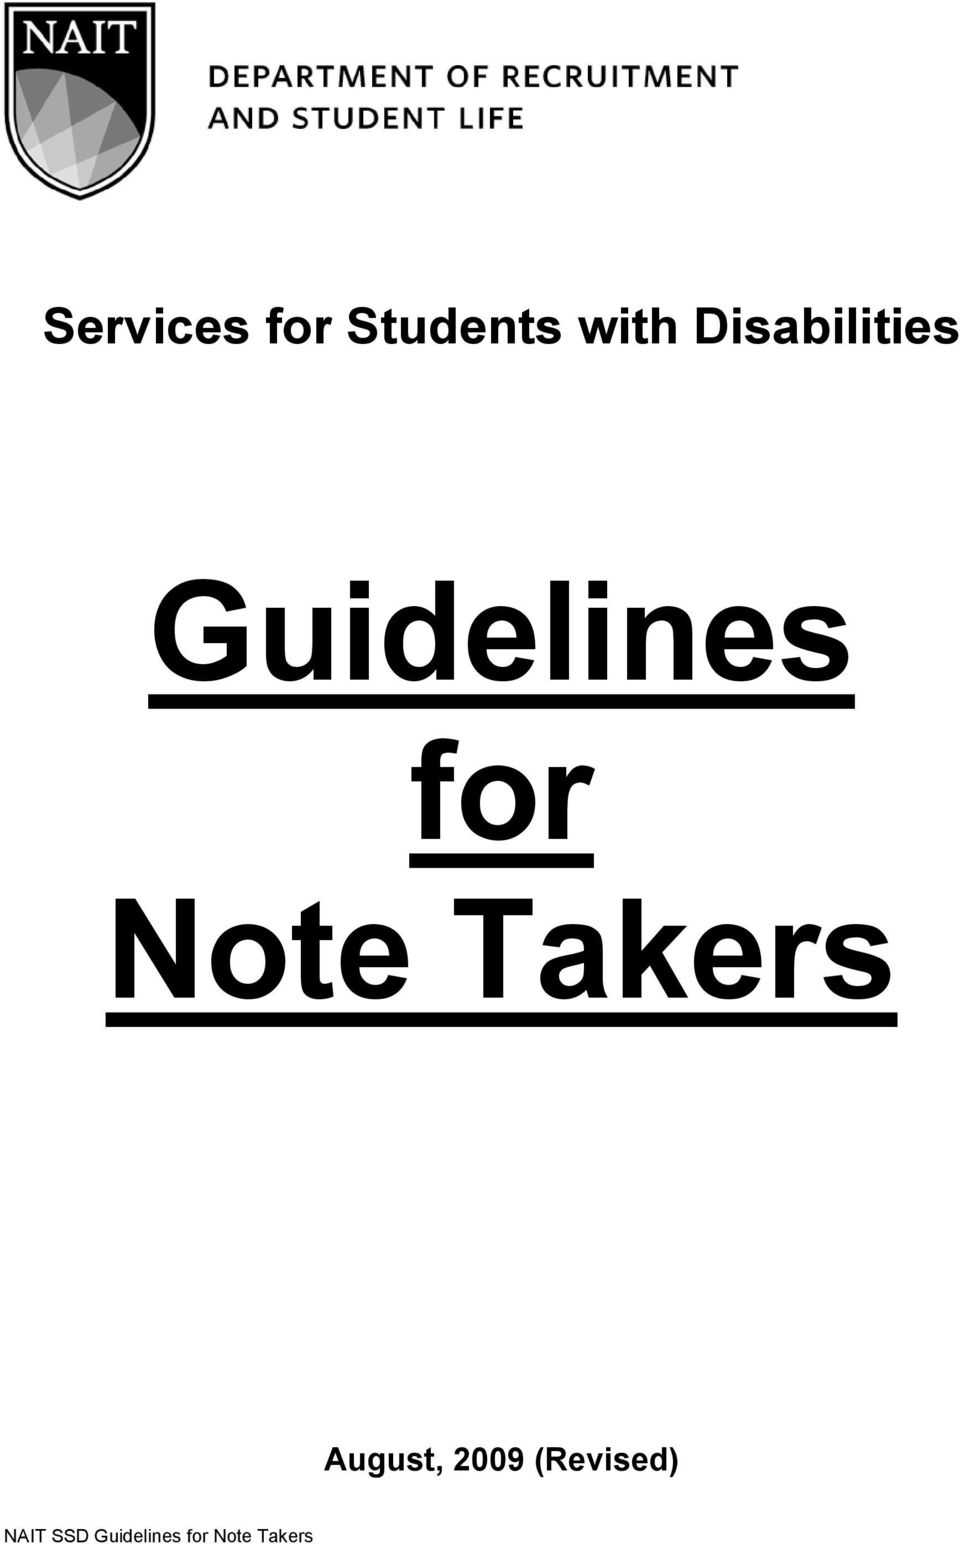 Guidelines for Note